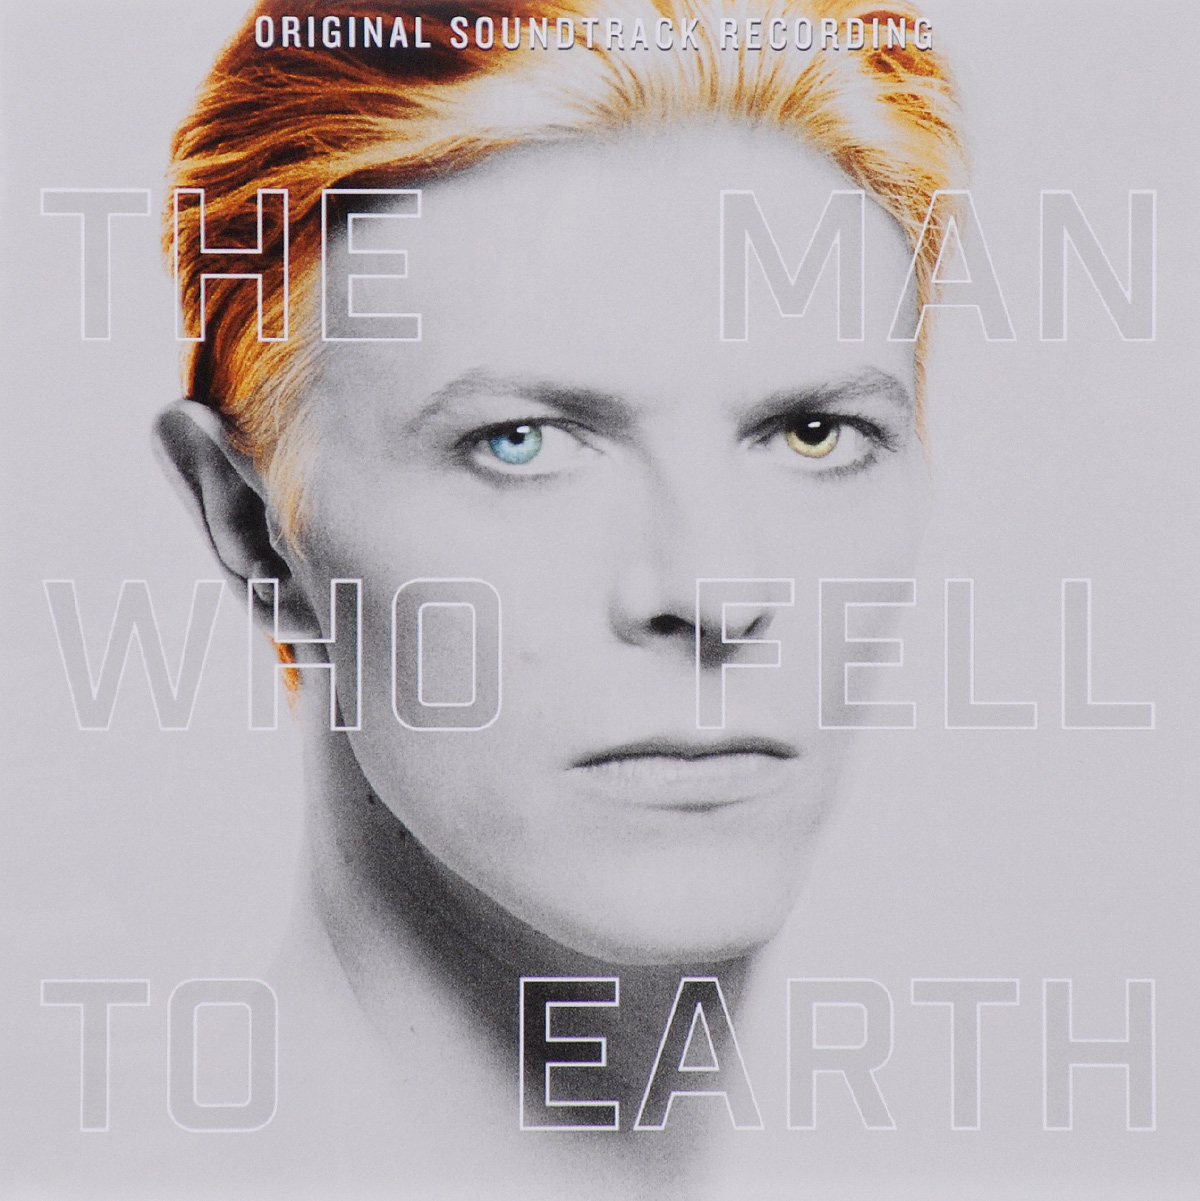 Zakazat.ru The Man Who Fell To Earth. Original Soundtrack Recording (2 CD)